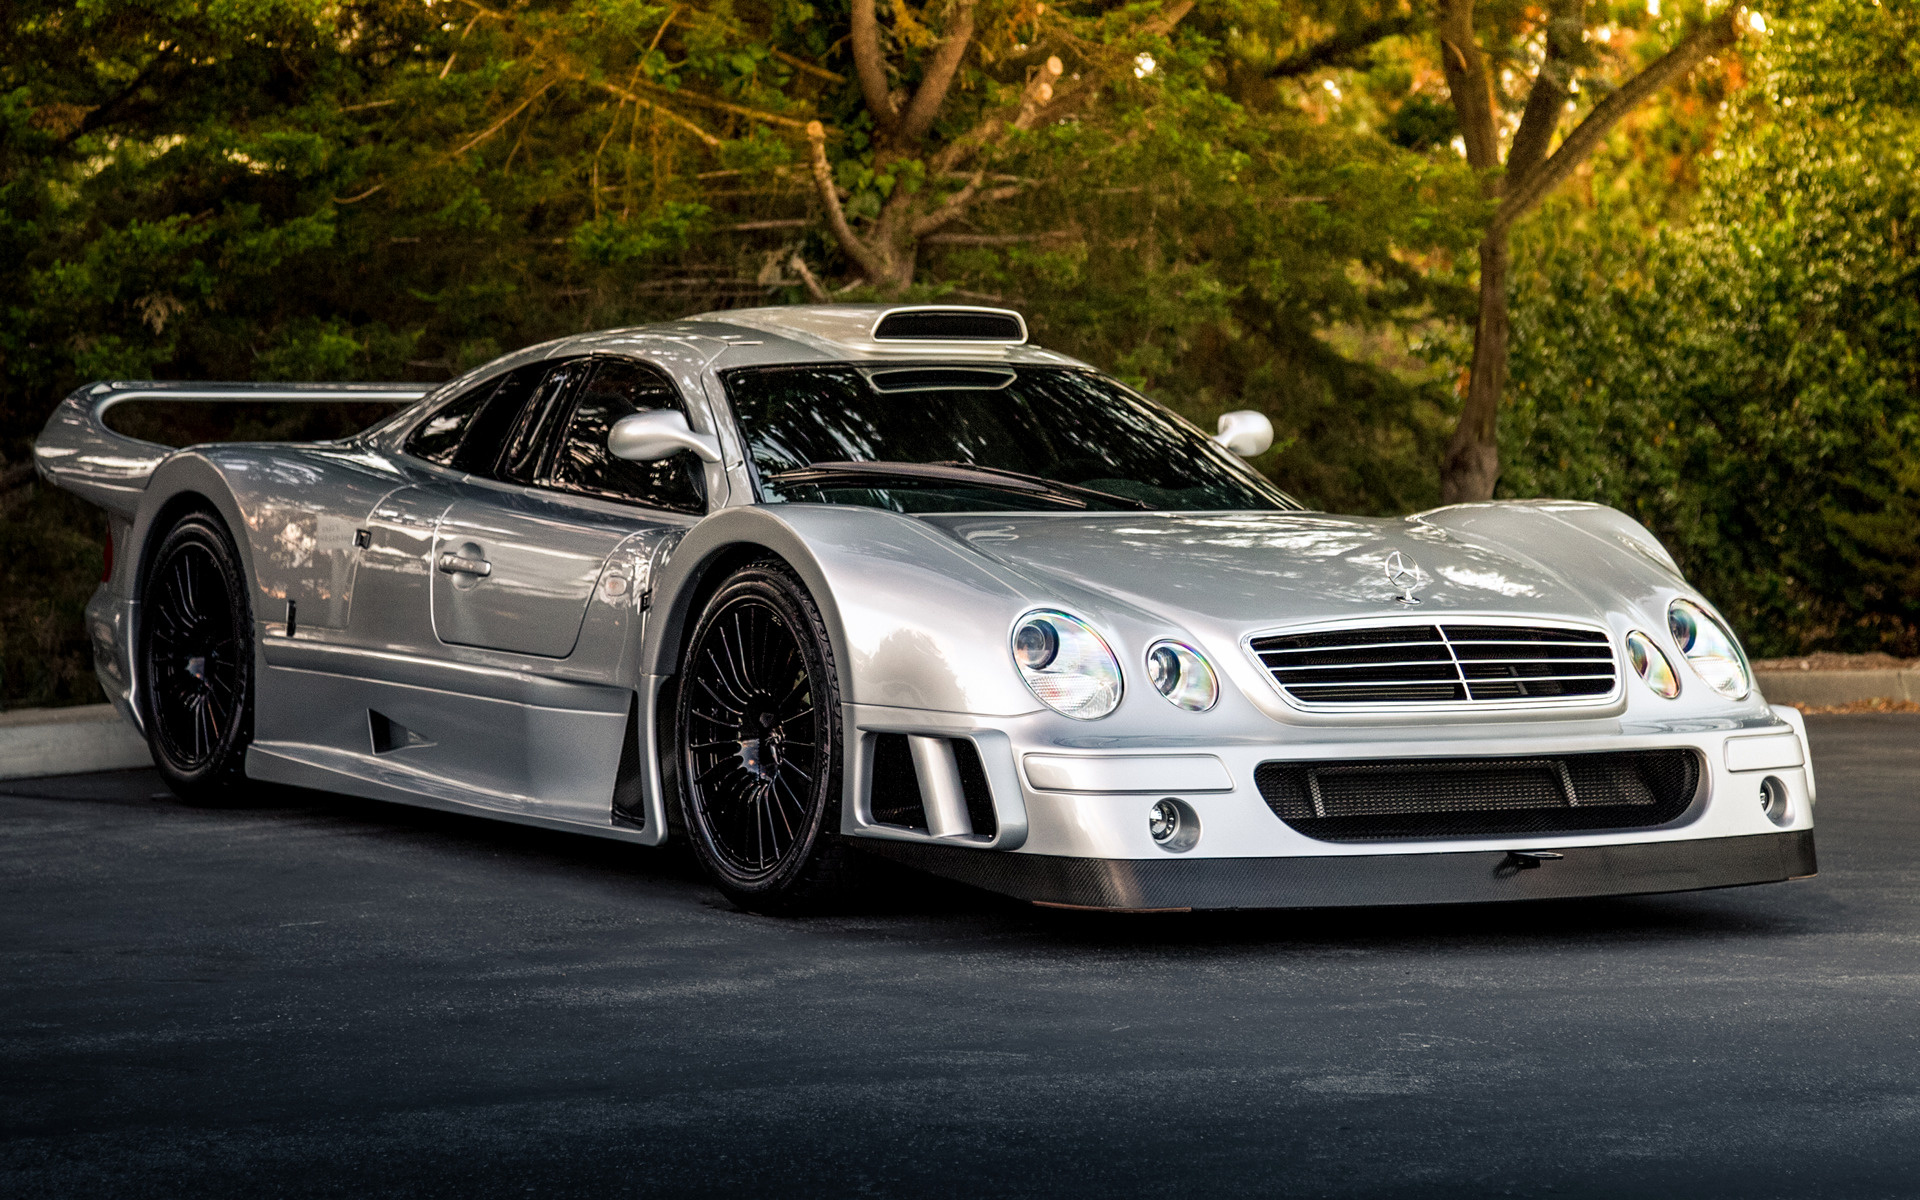 1998 Mercedes Benz Clk Gtr Road Car Wallpapers And Hd